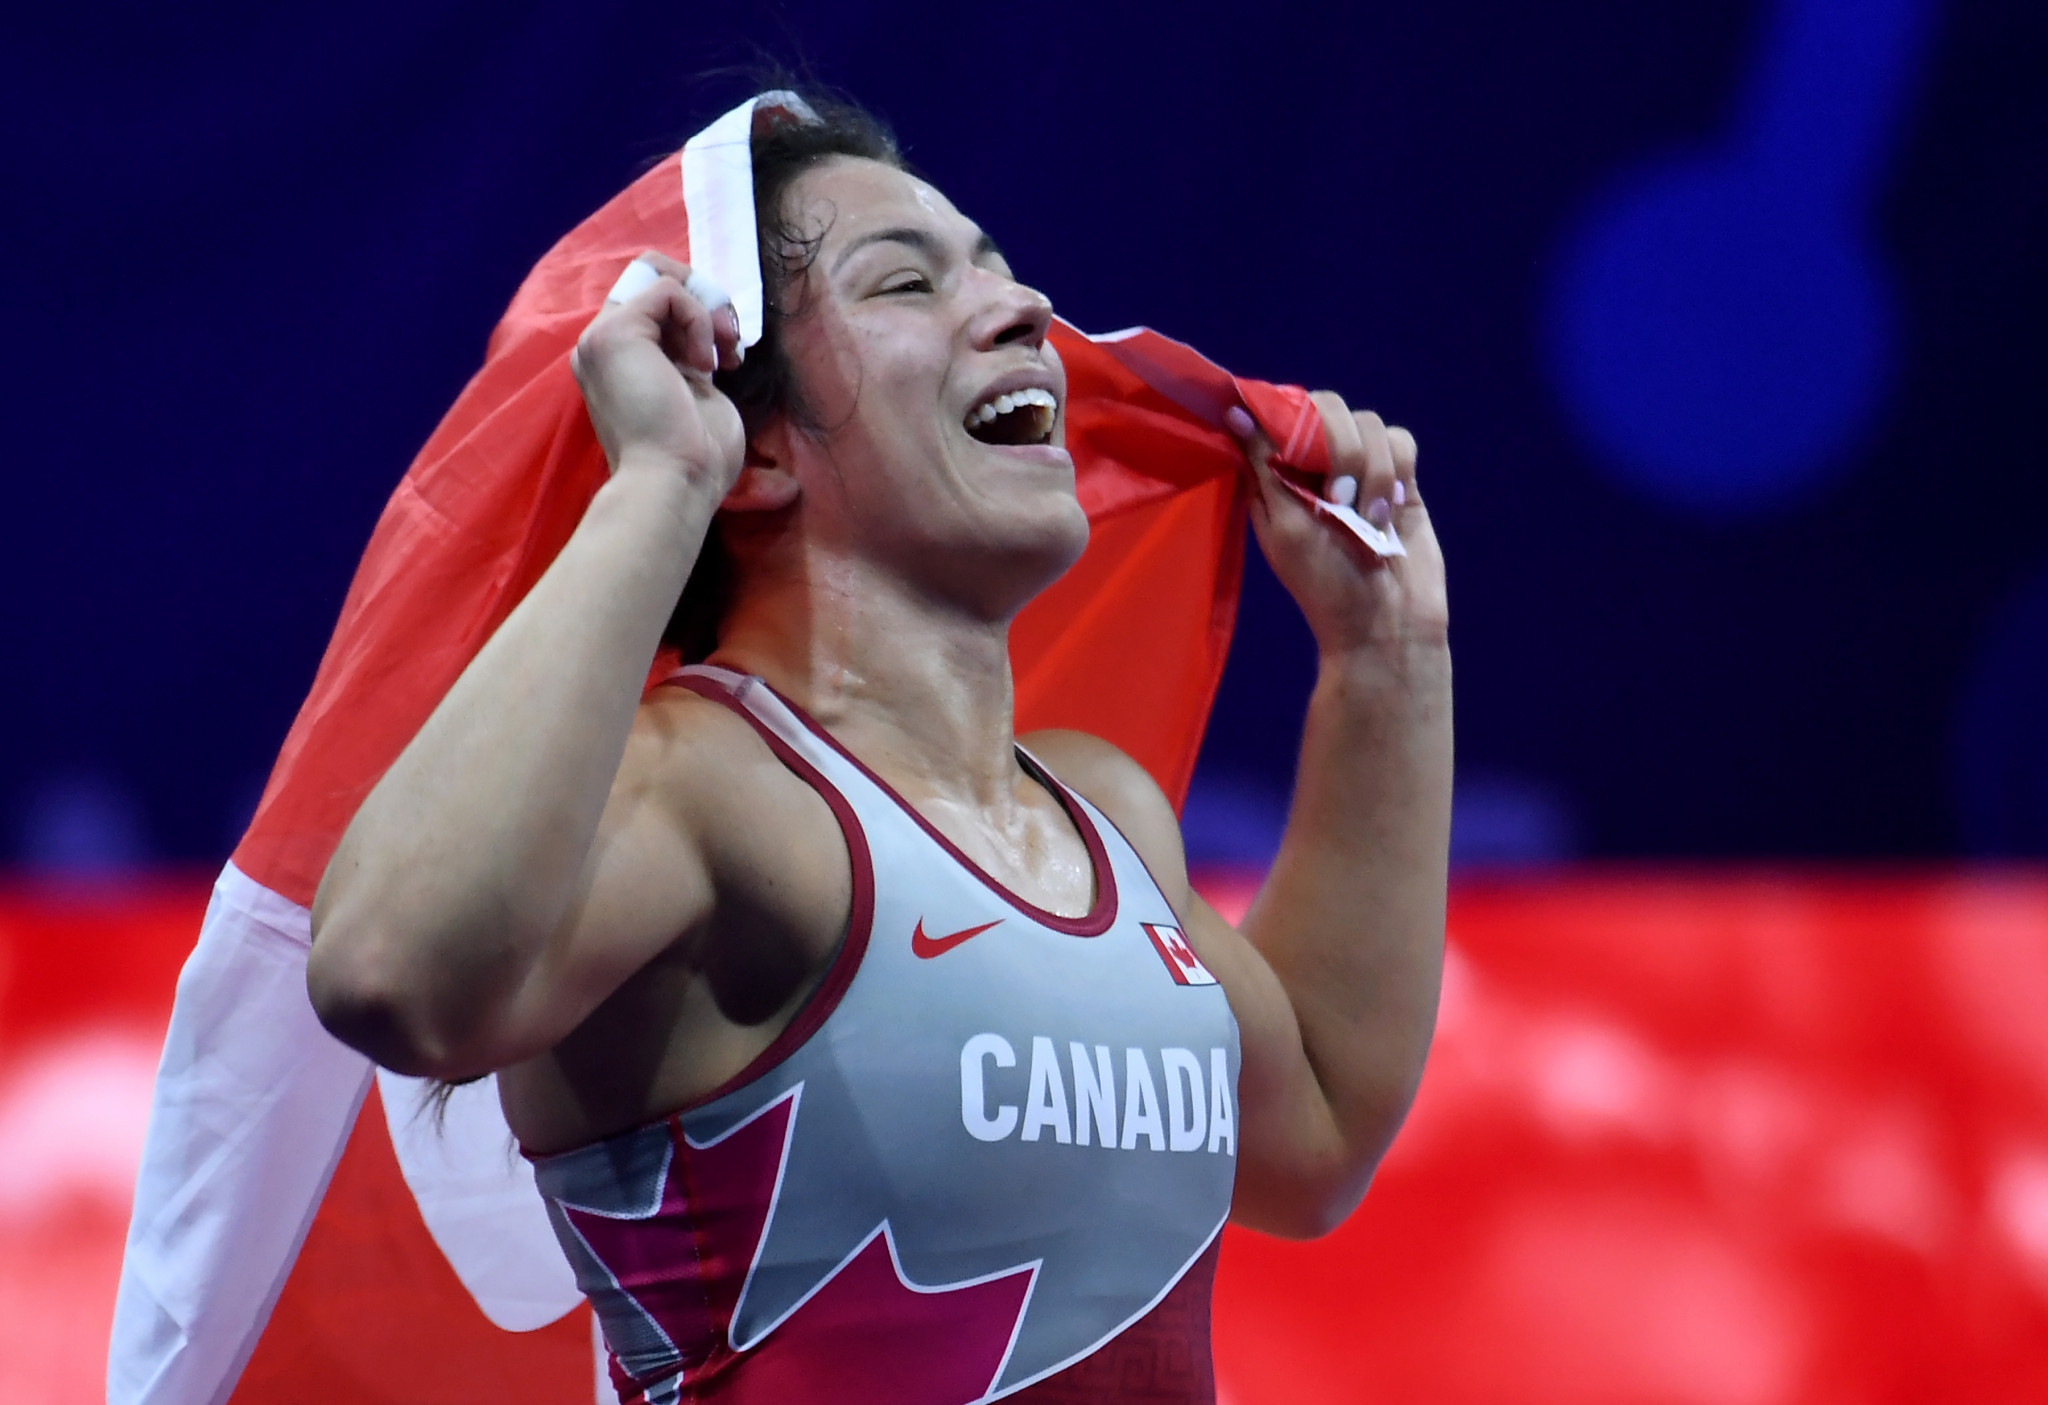 Former world champion and Pan American Games gold medallist Justina Di Stasio will compete at heavyweight ©Getty Images